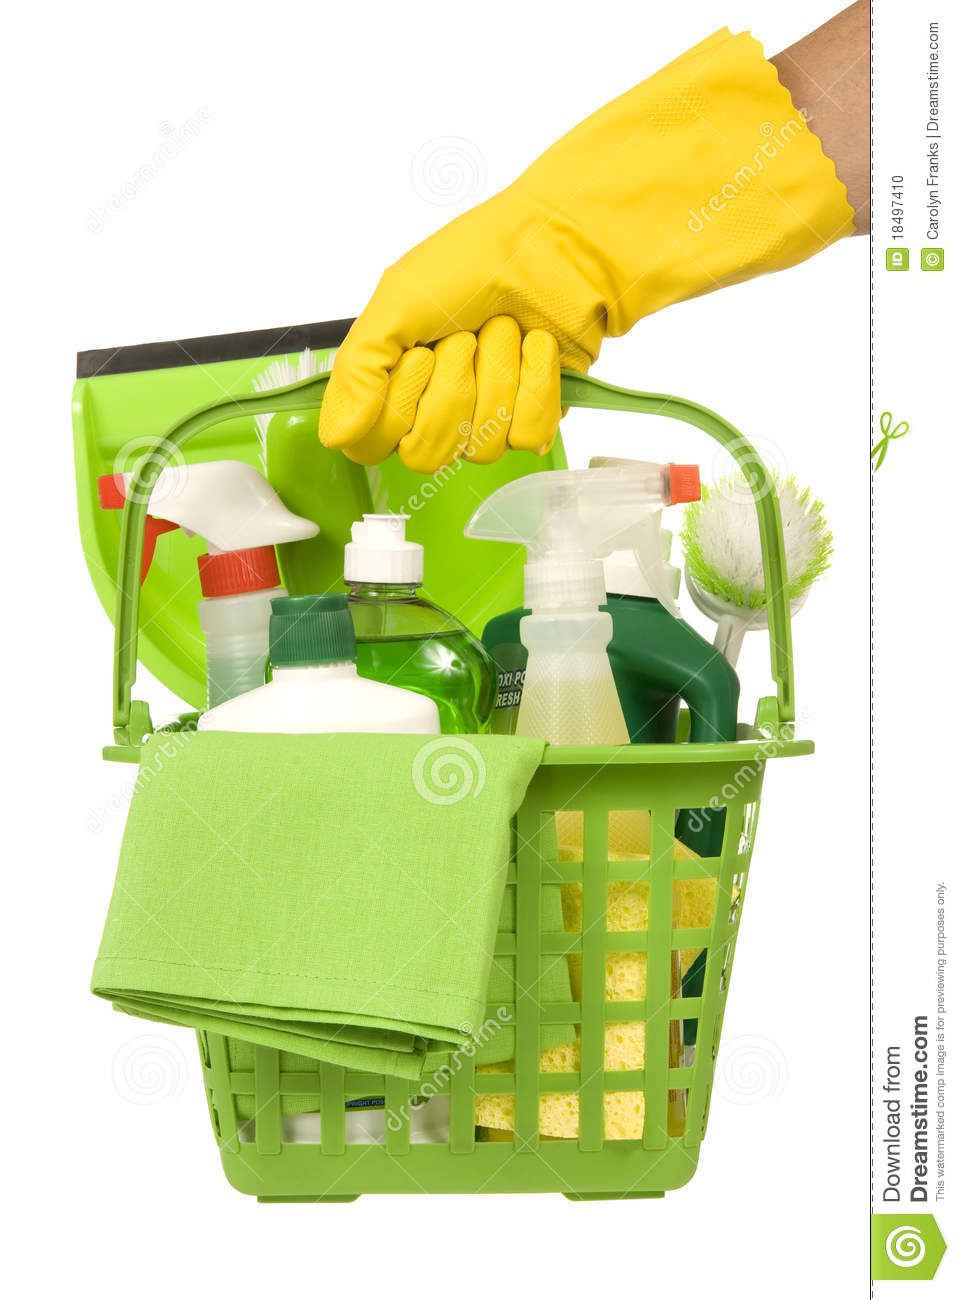 Environmentally safe cleaning products are the way of the future